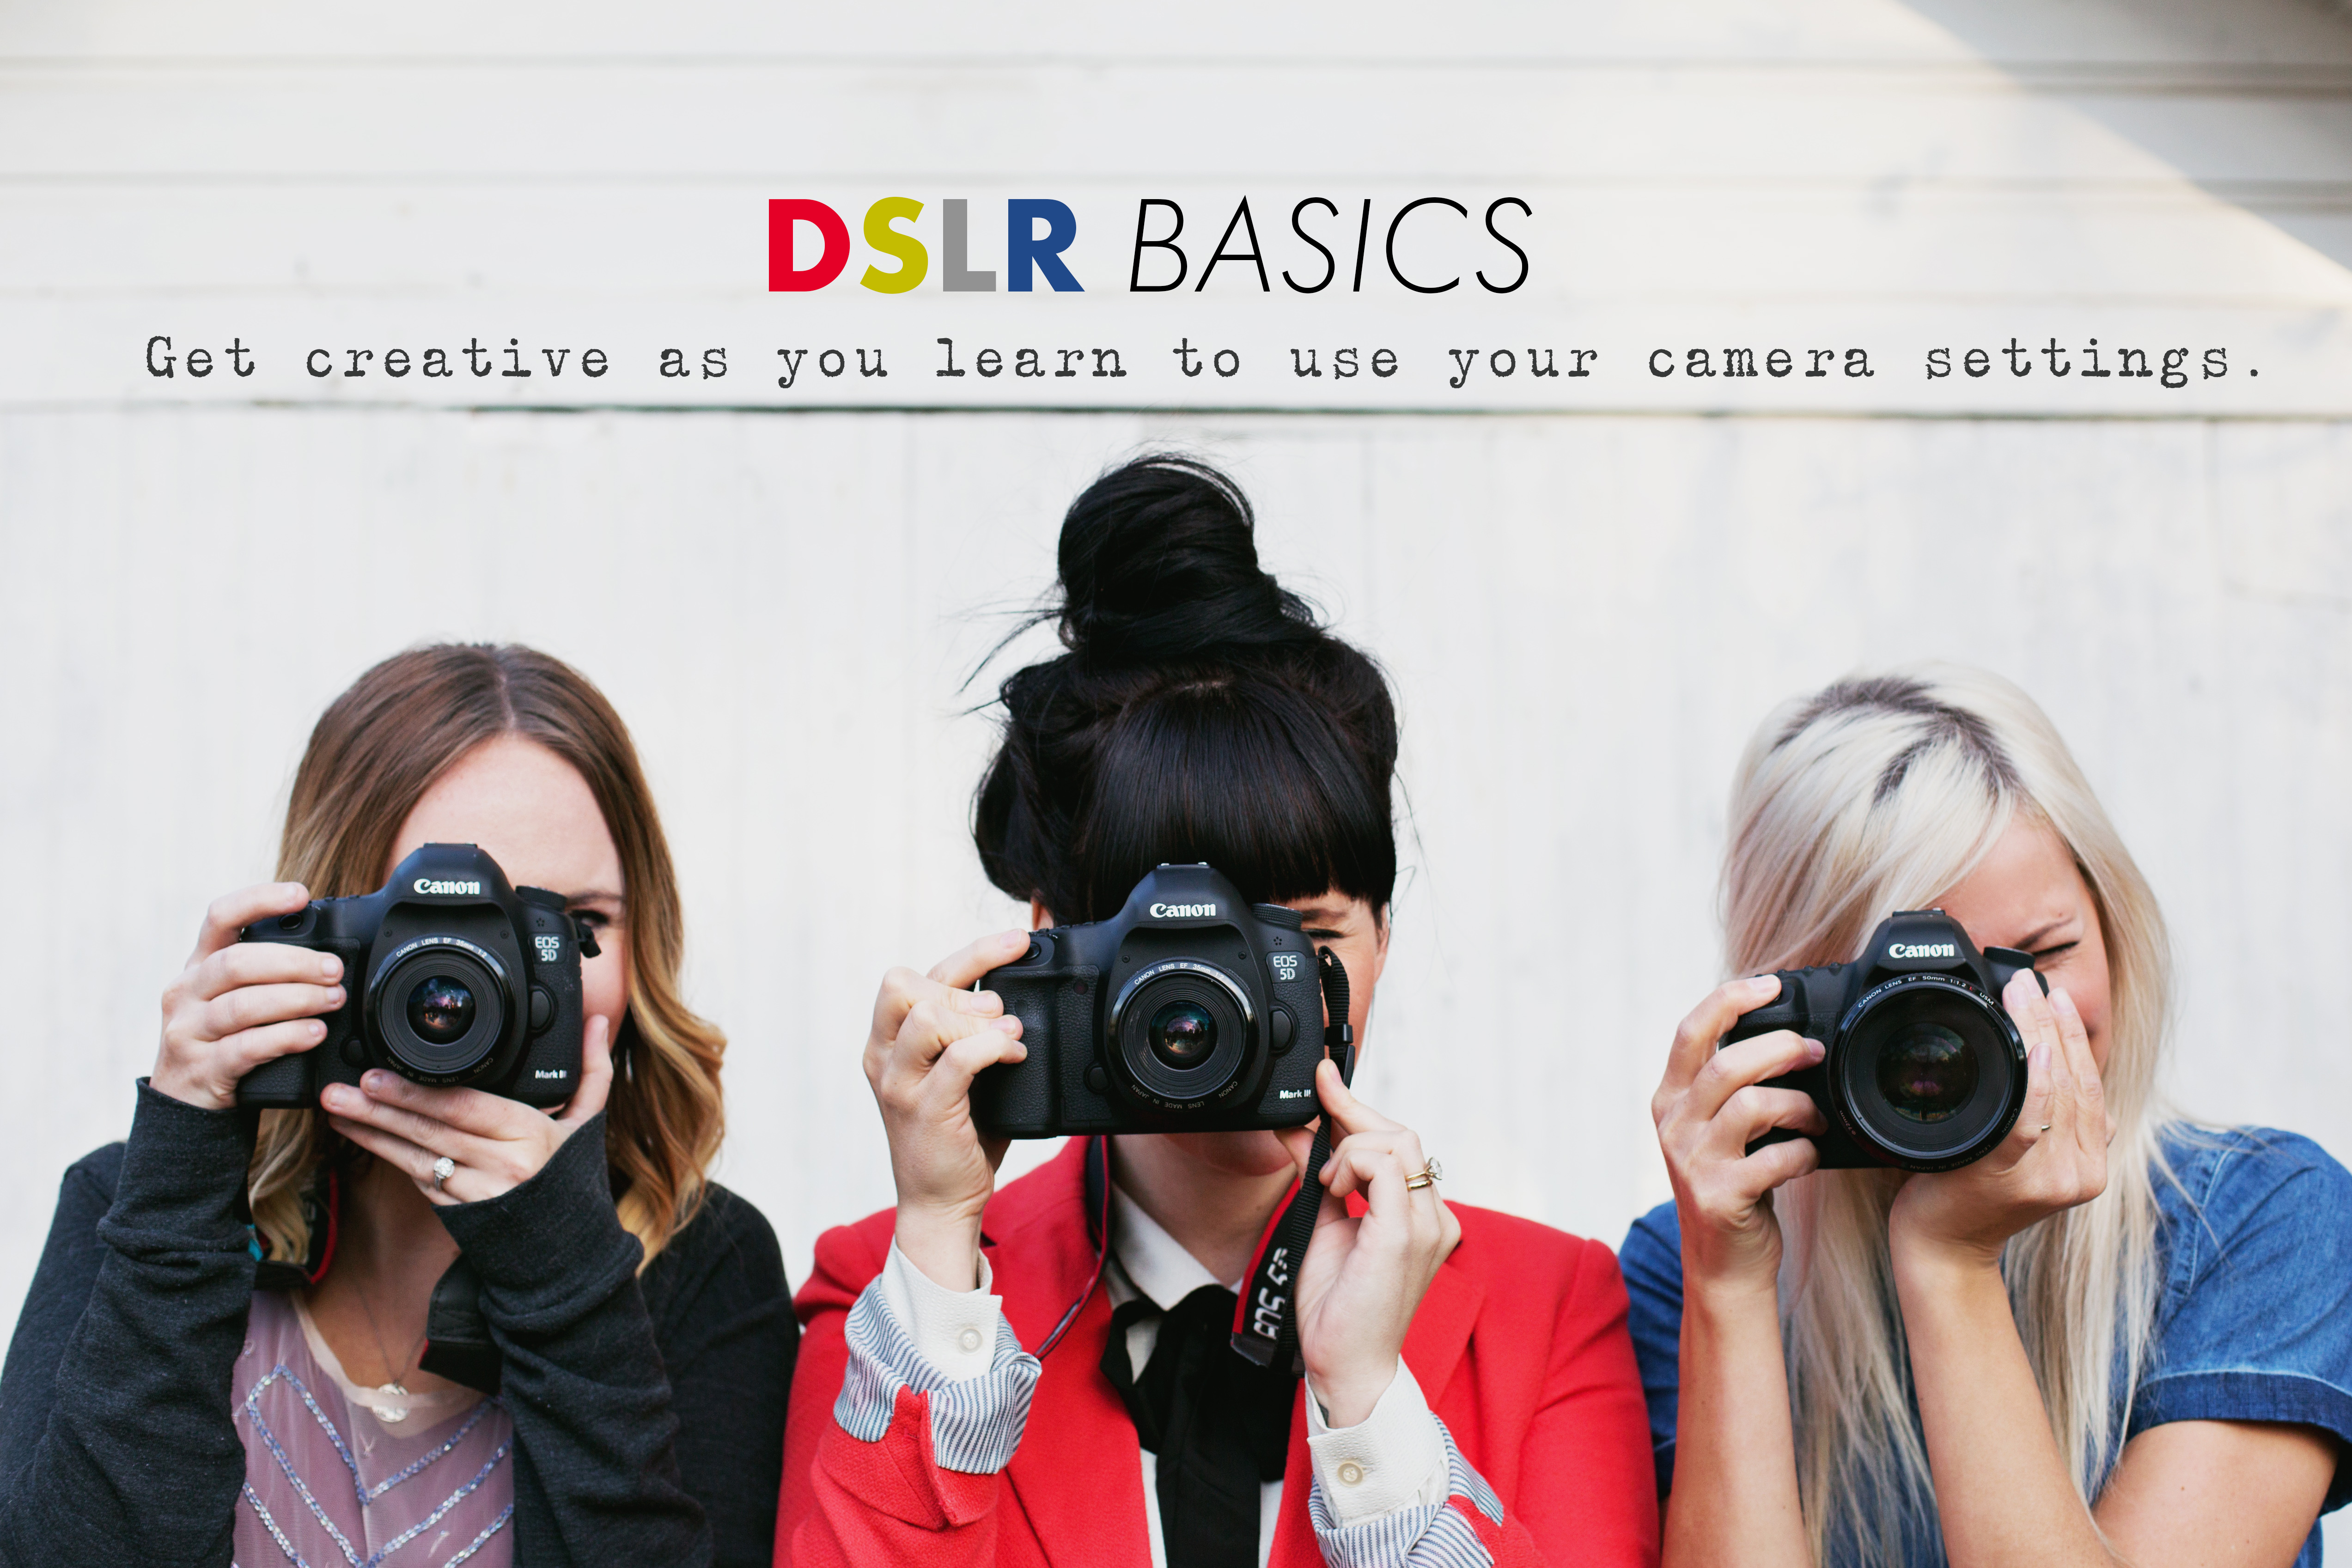 Camera Dslr Camera Courses new courses dslr basics and photoshop for bloggers a beautiful mess e course sign up at shop abeautifulmess com